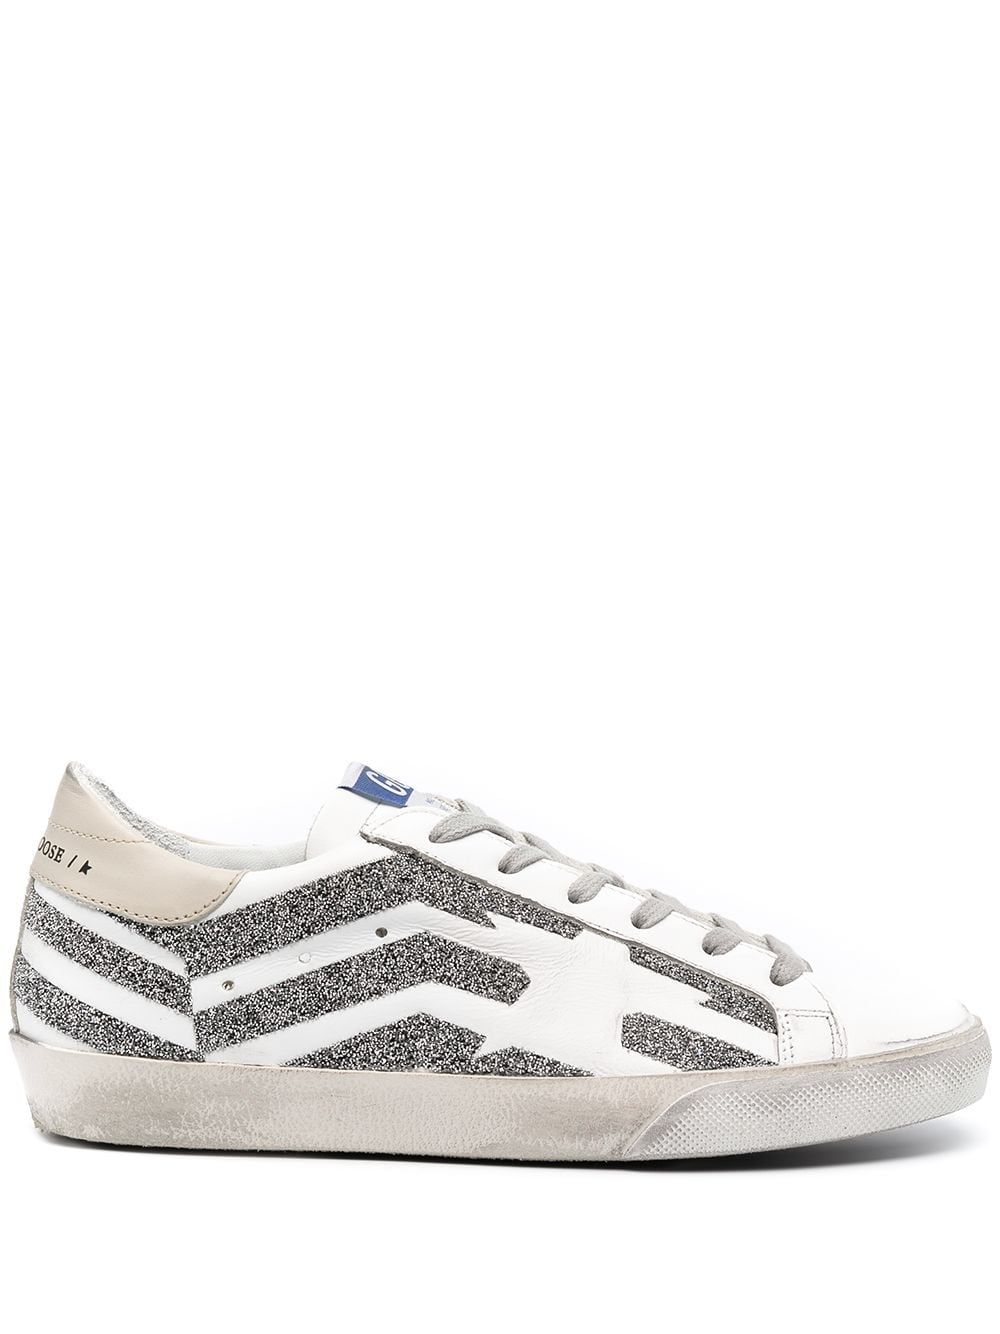 Golden Goose Sneakers GOLDEN GOOSE WOMEN'S GWF00106F00125810539 WHITE LEATHER SNEAKERS